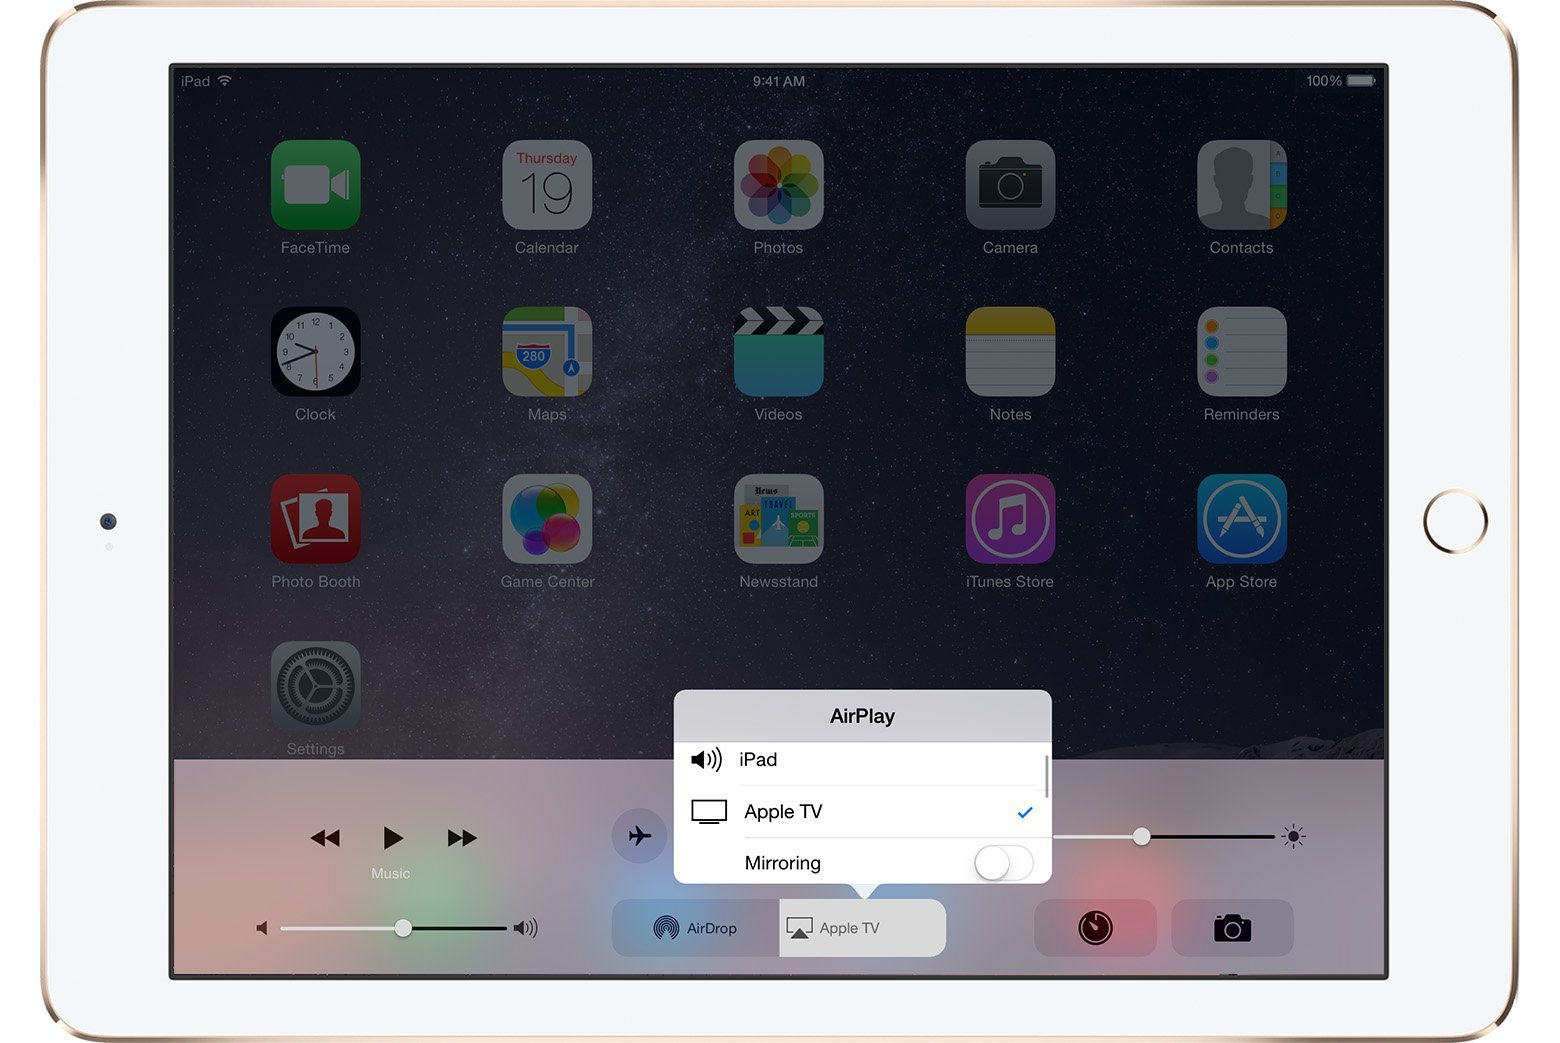 ipad-appletv-mirror-menu